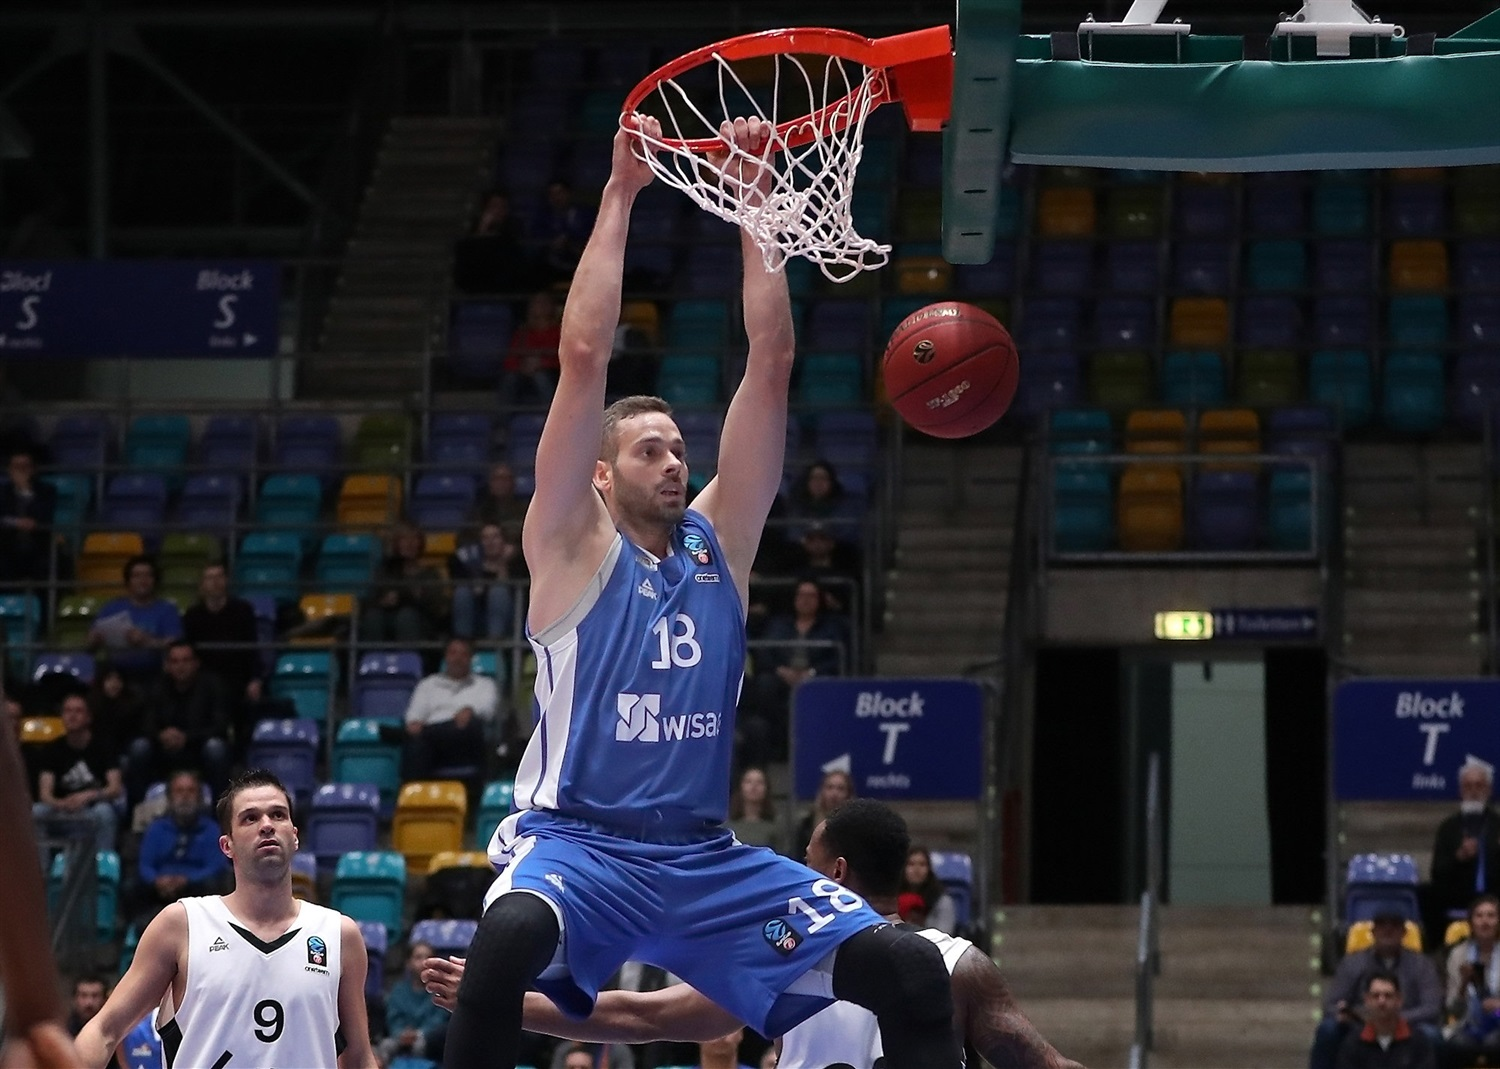 Jonas Wohlfarth-Bottermann - Fraport Skyliners Frankfurt (photo Skyliners) - EC18